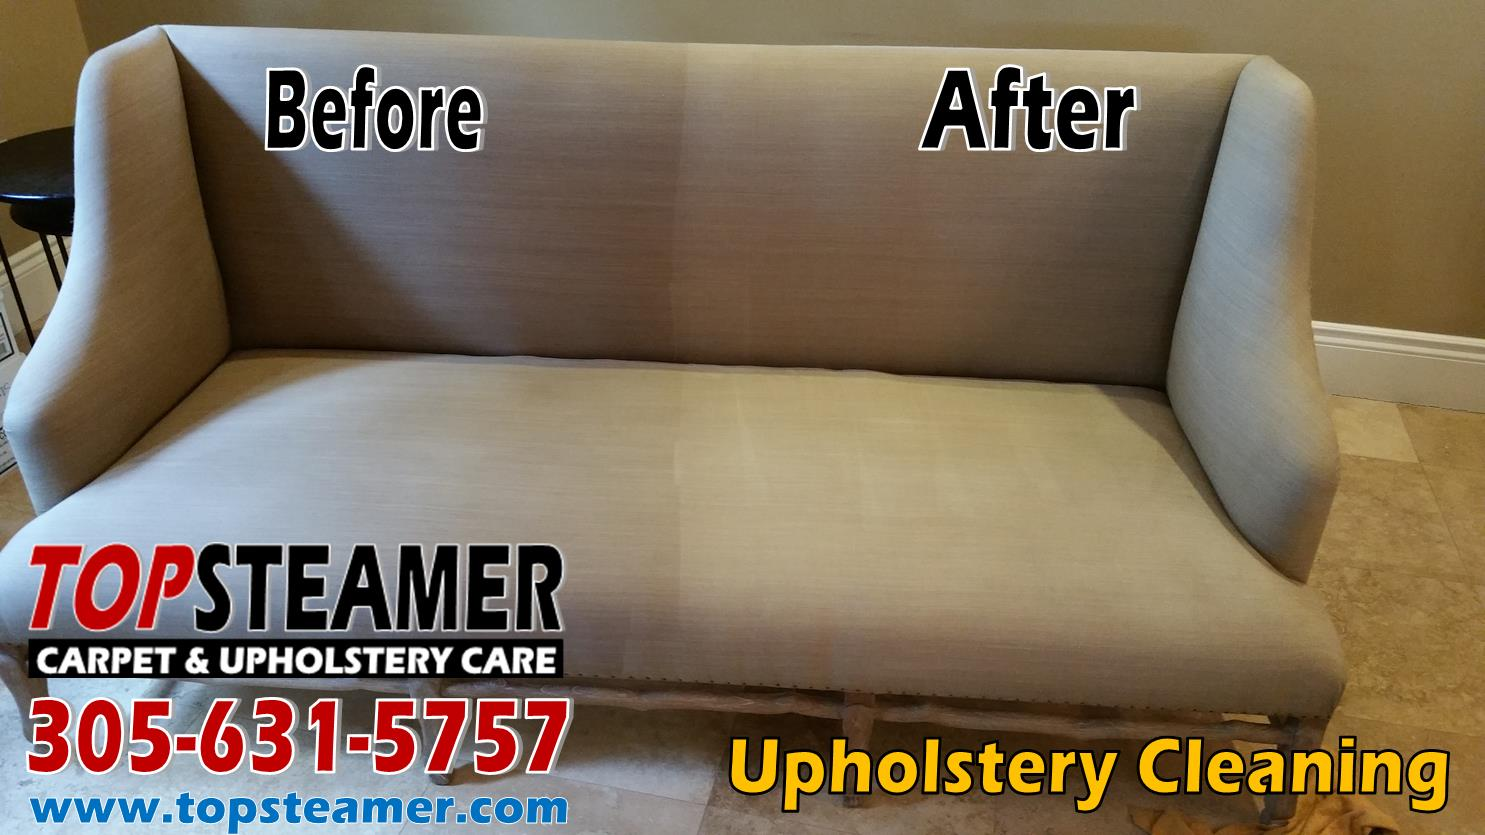 best steamer for sofa lc2 cassina preco carpet cleaning miami about us top upholstery